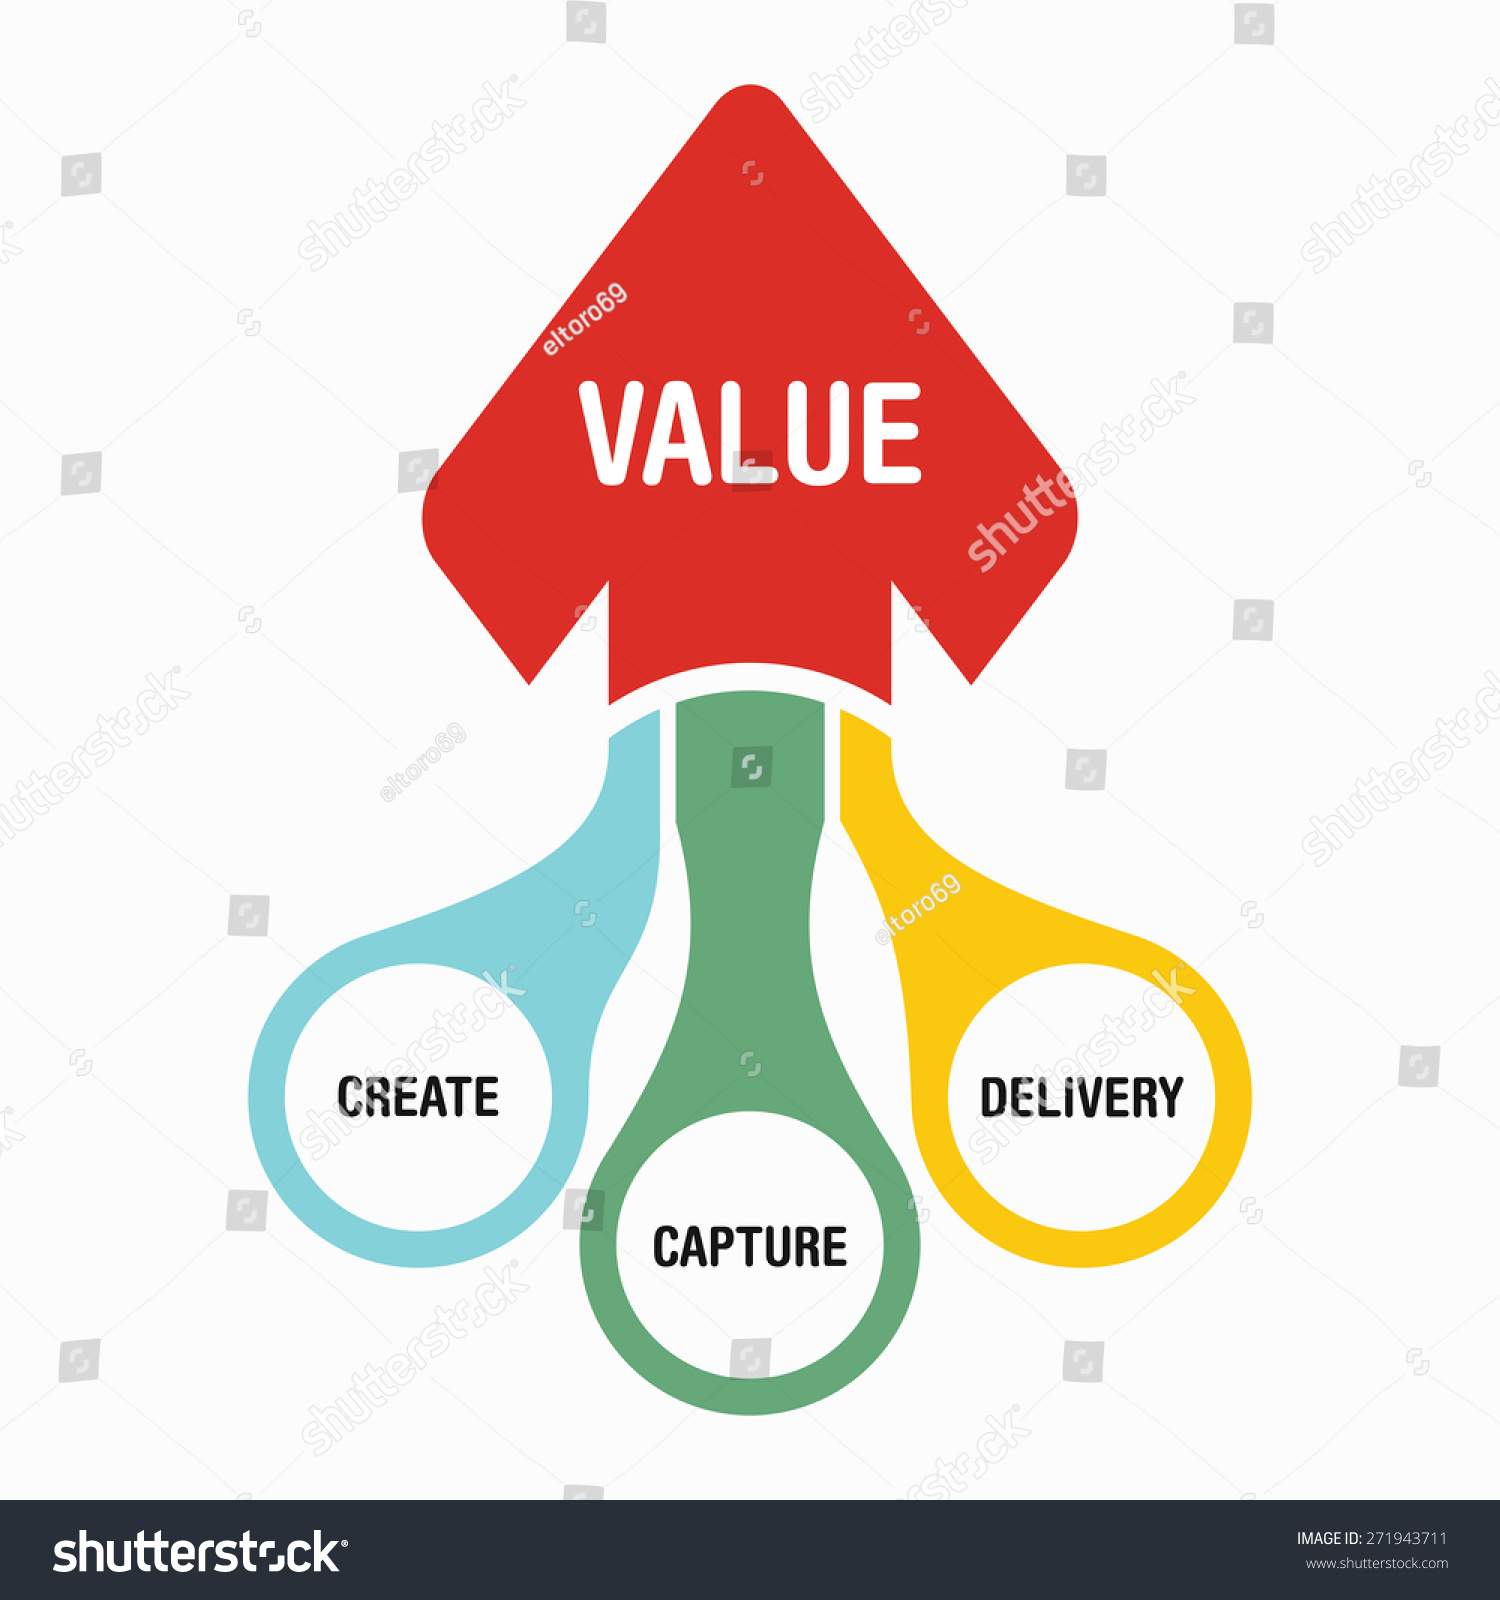 the creation of value —from the creation of goods and services to consumption—the role and importance of the professionals who manage today's complex supply chains is often.